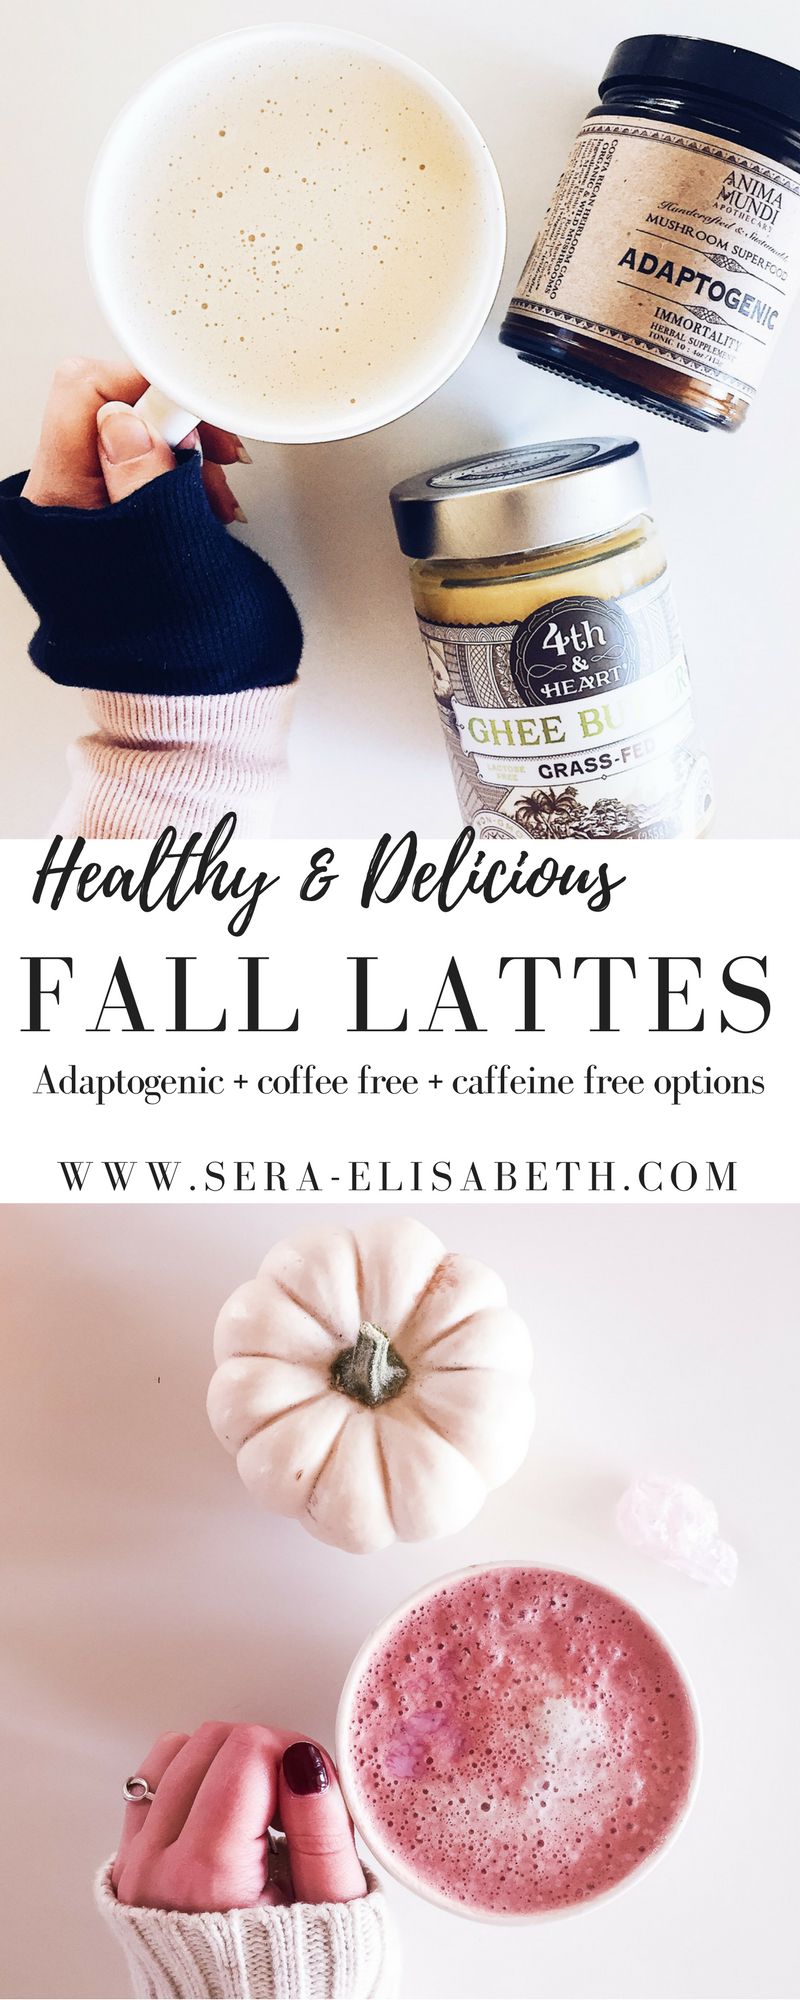 Healthy fall lattes with adaptogens + collagen protein